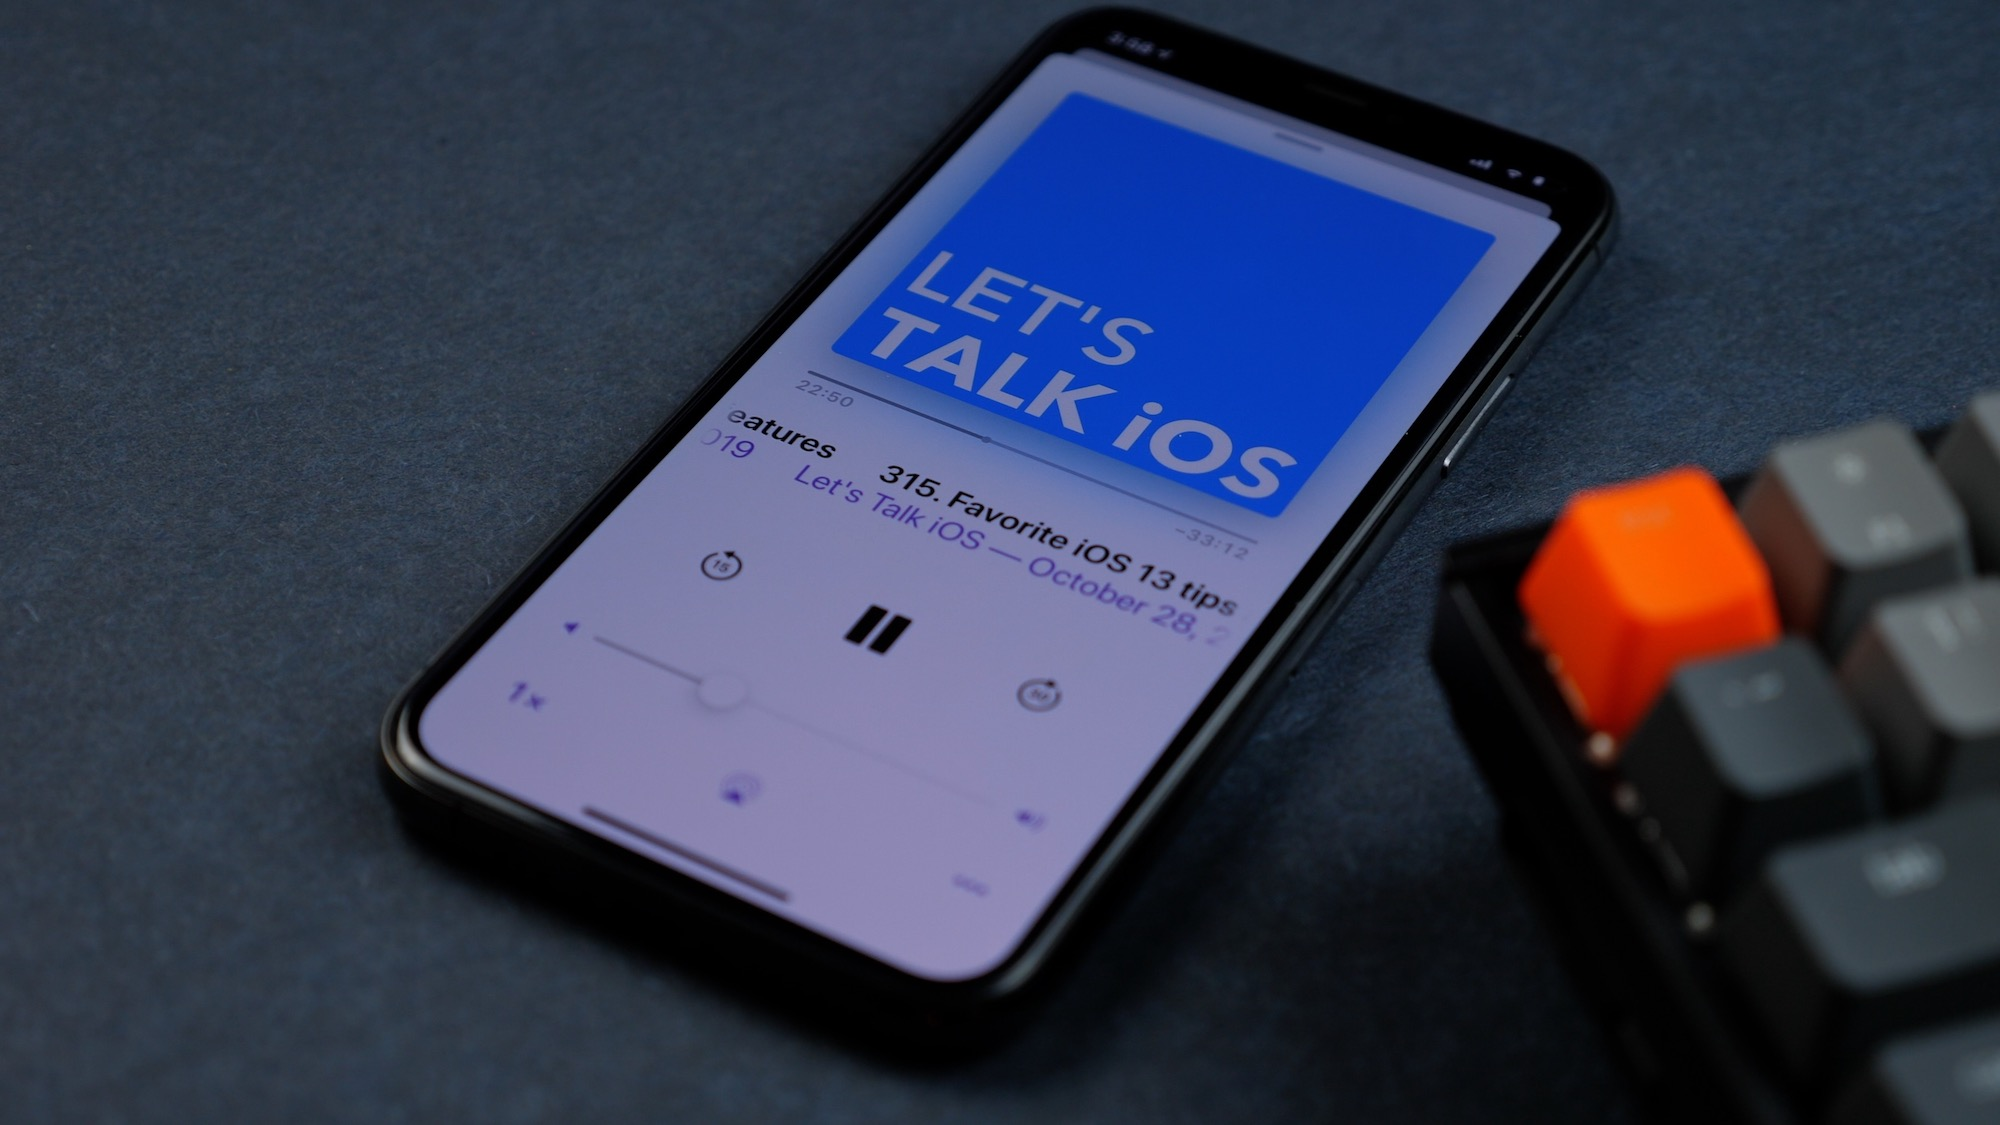 Apple reportedly hires NatGeo's Director of Podcasts to help bolster original podcast plans